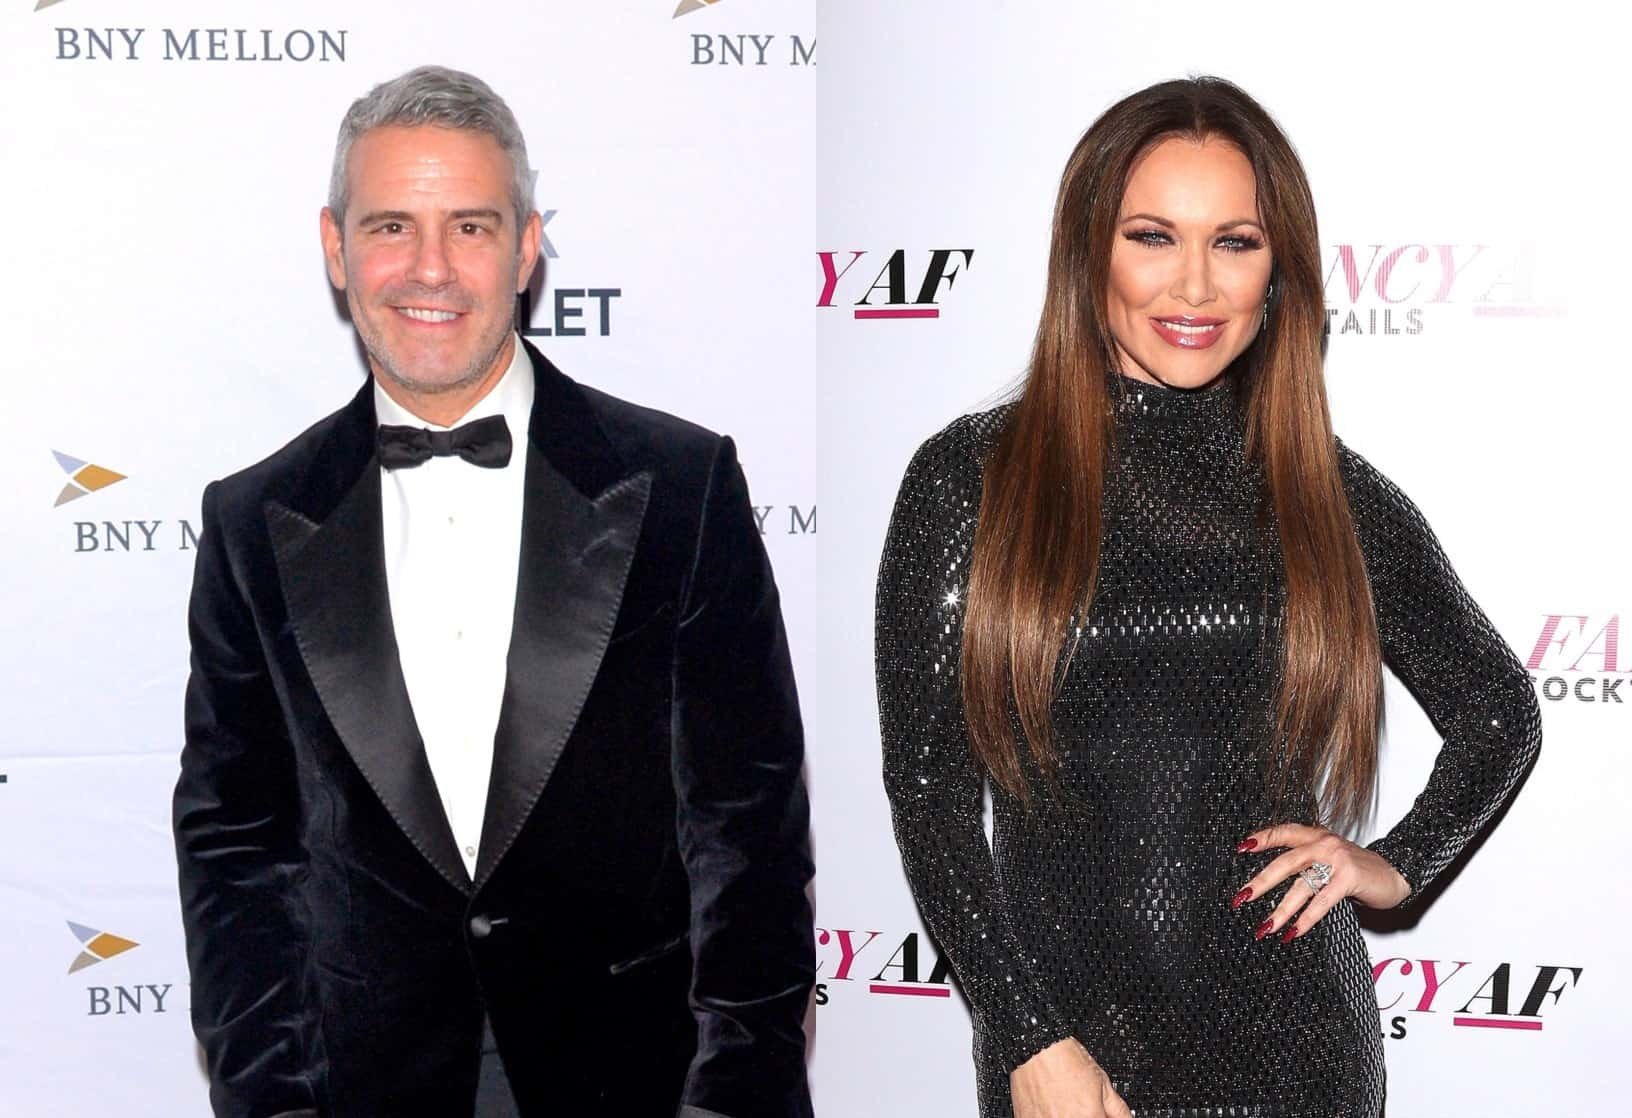 Andy Cohen Slams LeeAnne Locken for 'Vile, Disgusting Slurs' Against Mexicans as RHOD Star Issues New Public Apology